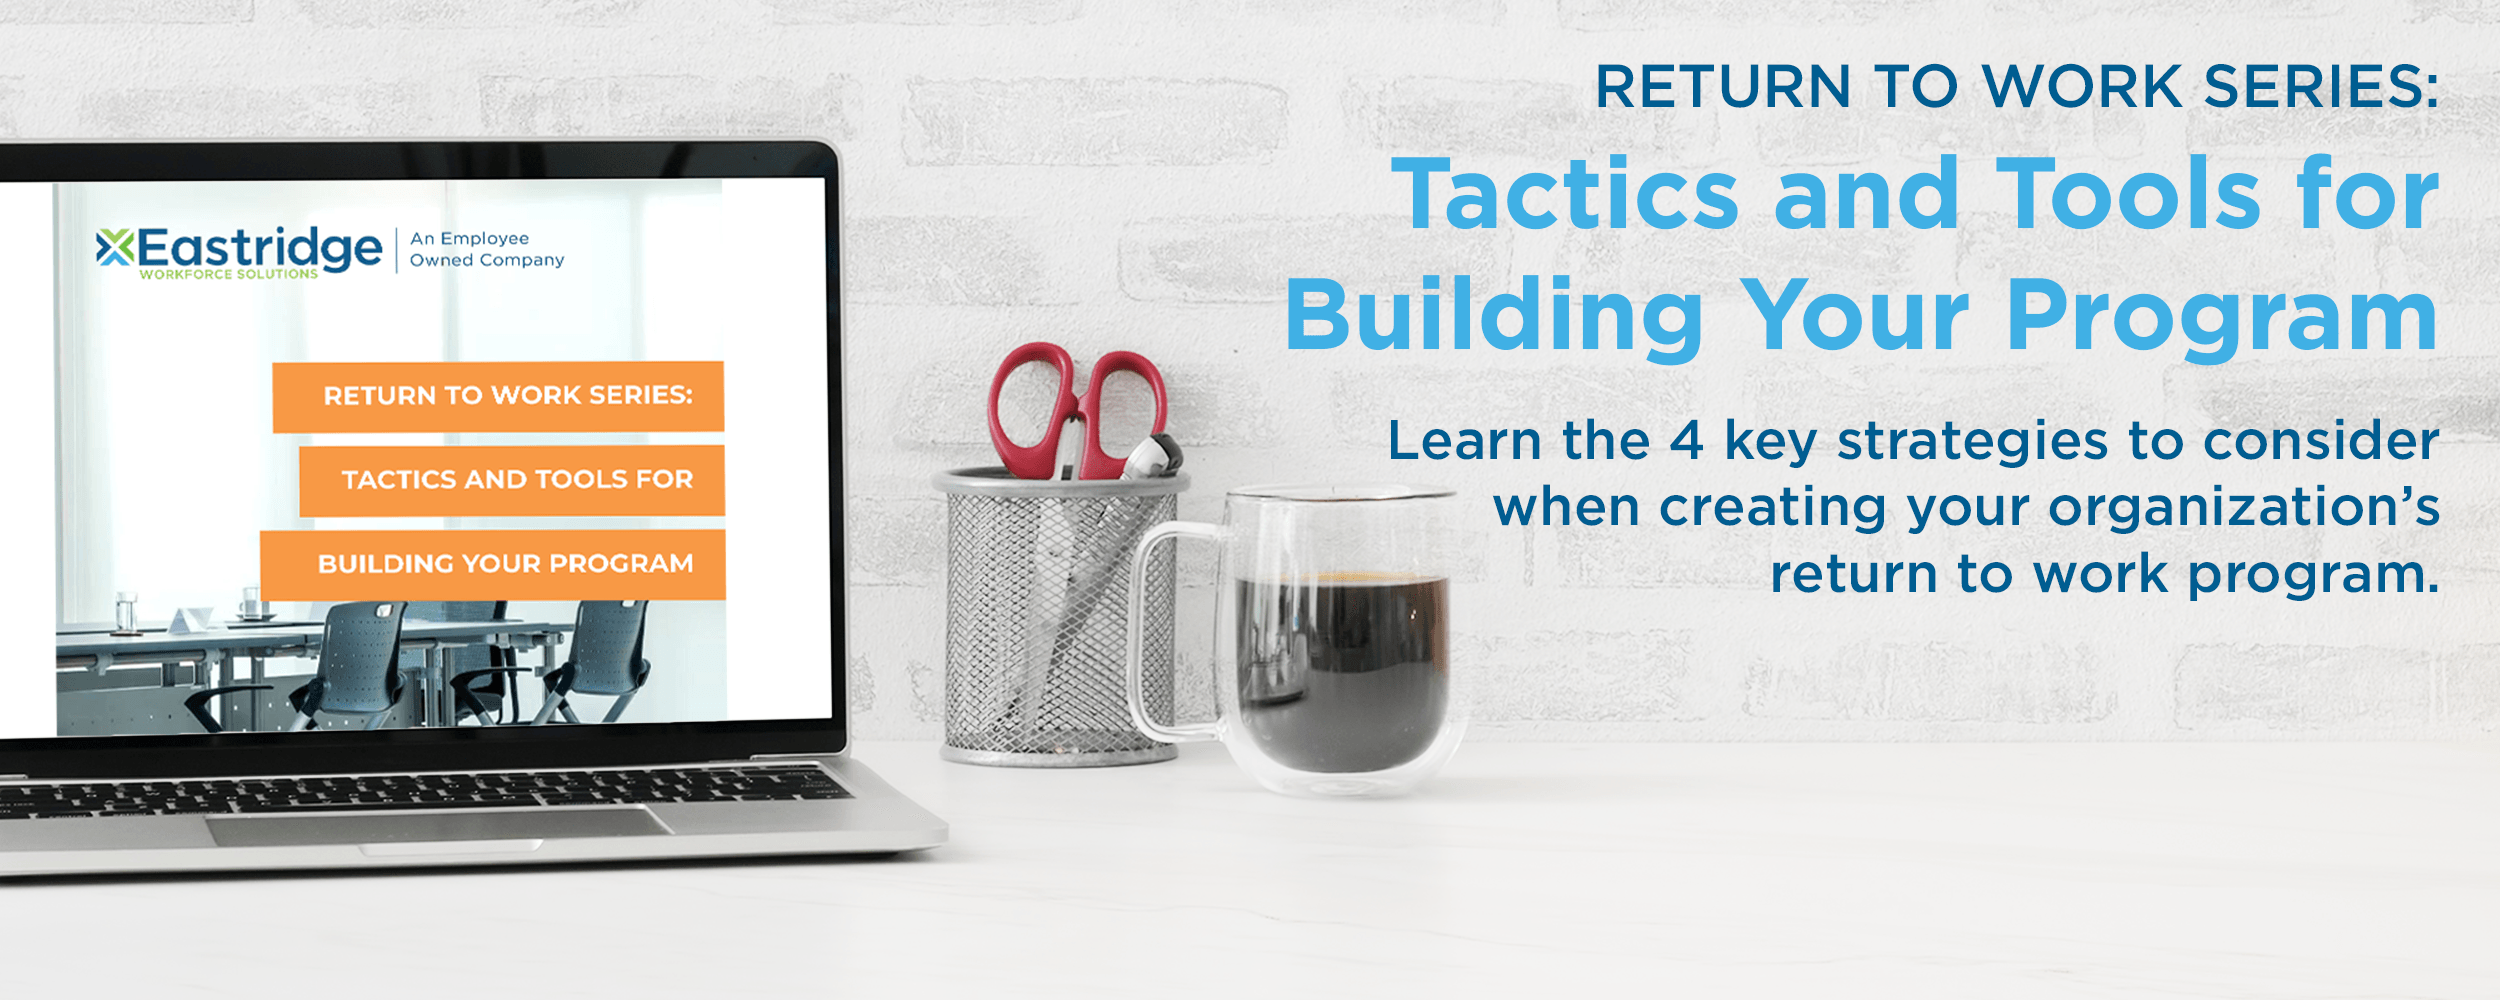 return to work series tactics and tools for building your program